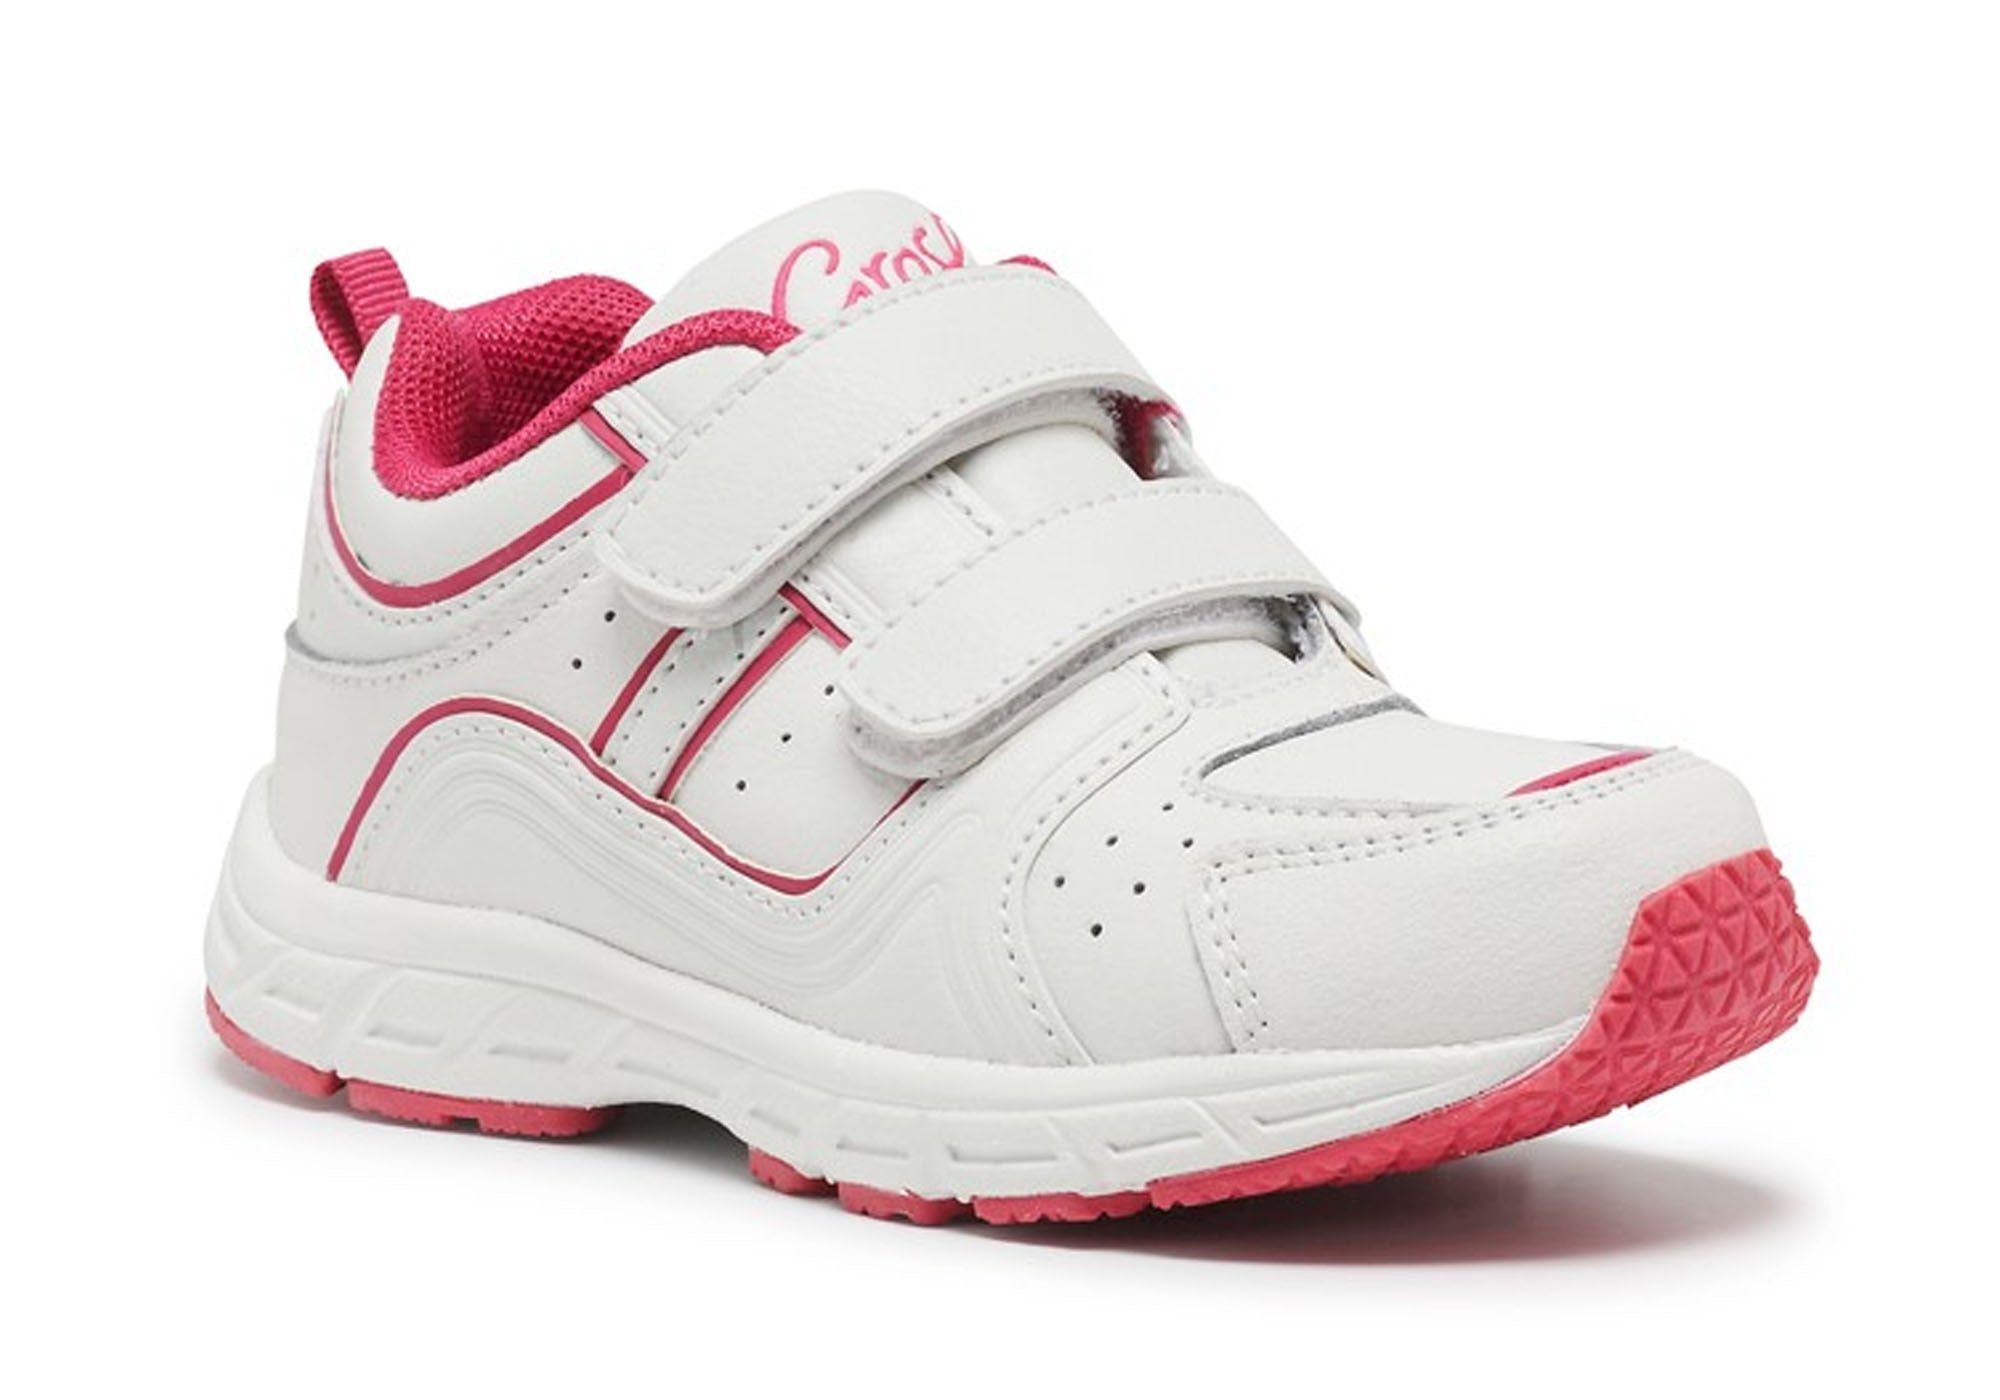 43ea97d1229a08 Details about NEW GROSBY HEIST KIDS COMFORTABLE ADJUSTABLE STRAP SNEAKERS